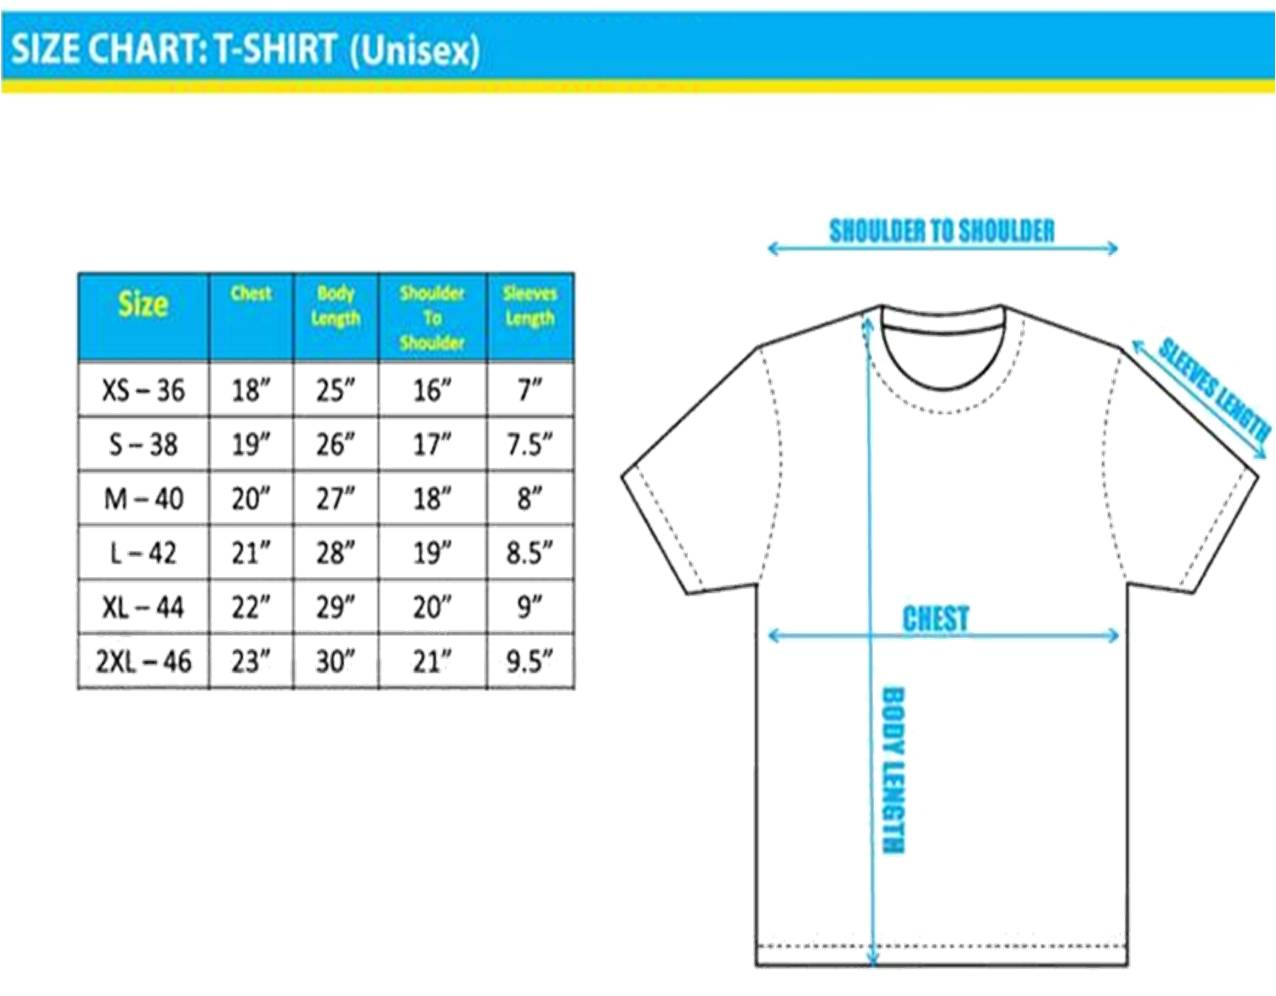 SIZE CHART: UK & EUROPE. Standard Allriot t-shirt fit you all know and love. Slightly tailored comfortable contemporary look. All UK and International orders (excluding USA and Canada) are printed on EUROPEAN FIT t-shirts. EUROPEAN FIT t-shirts not .